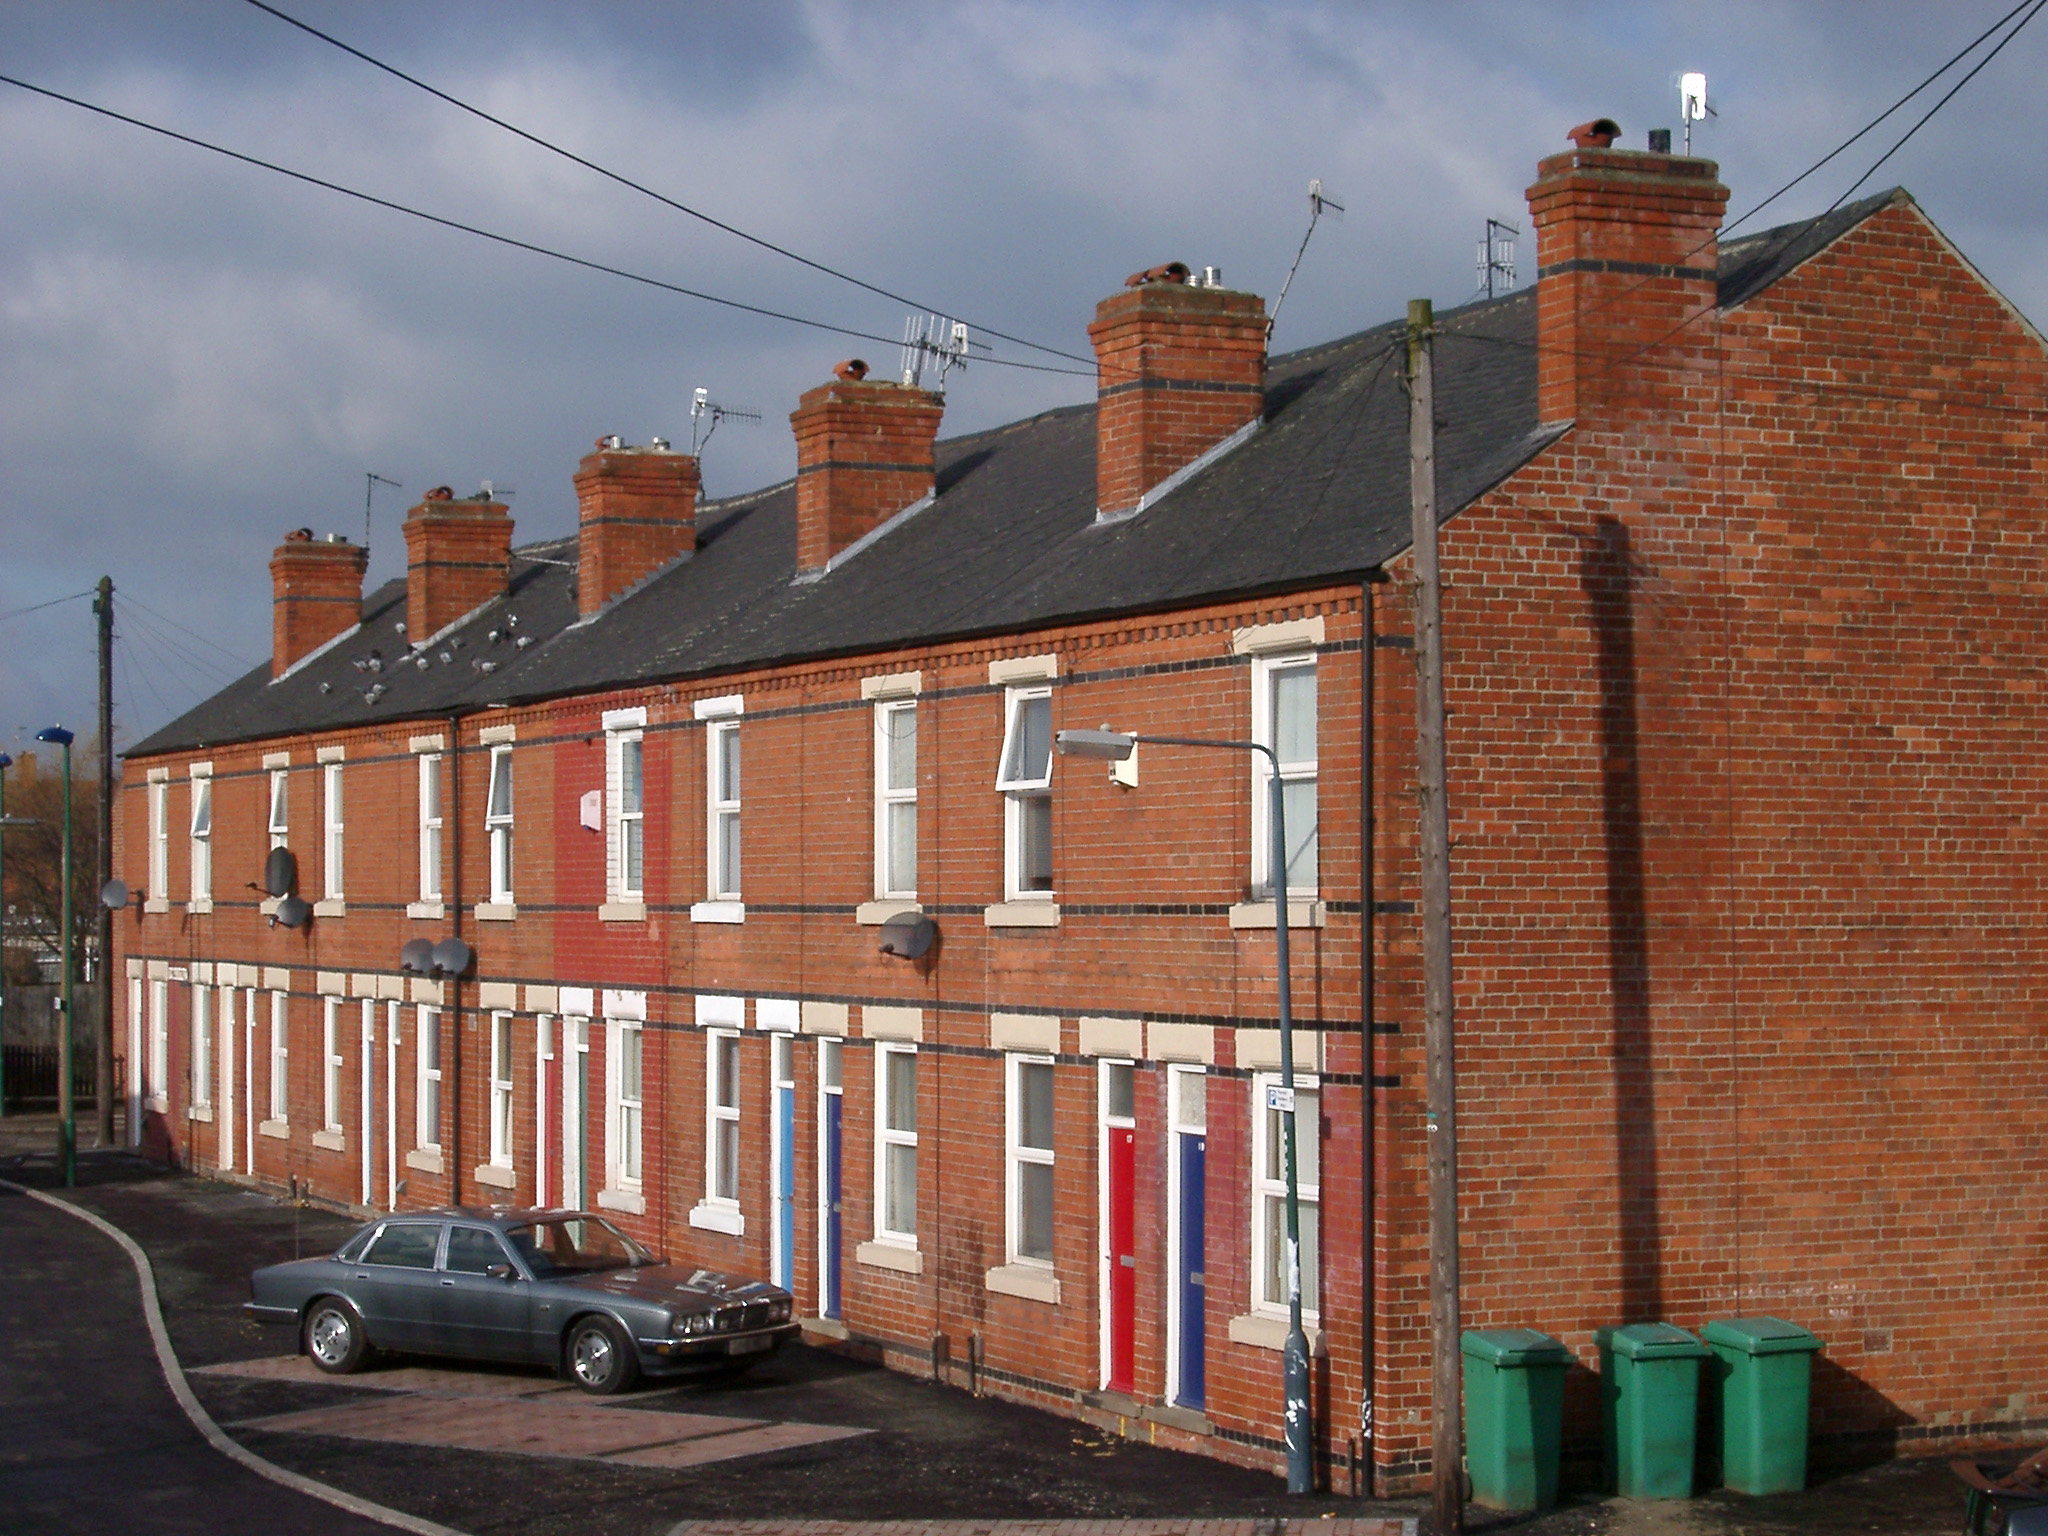 Free stock photo of red brick terraced houses for In the terrace